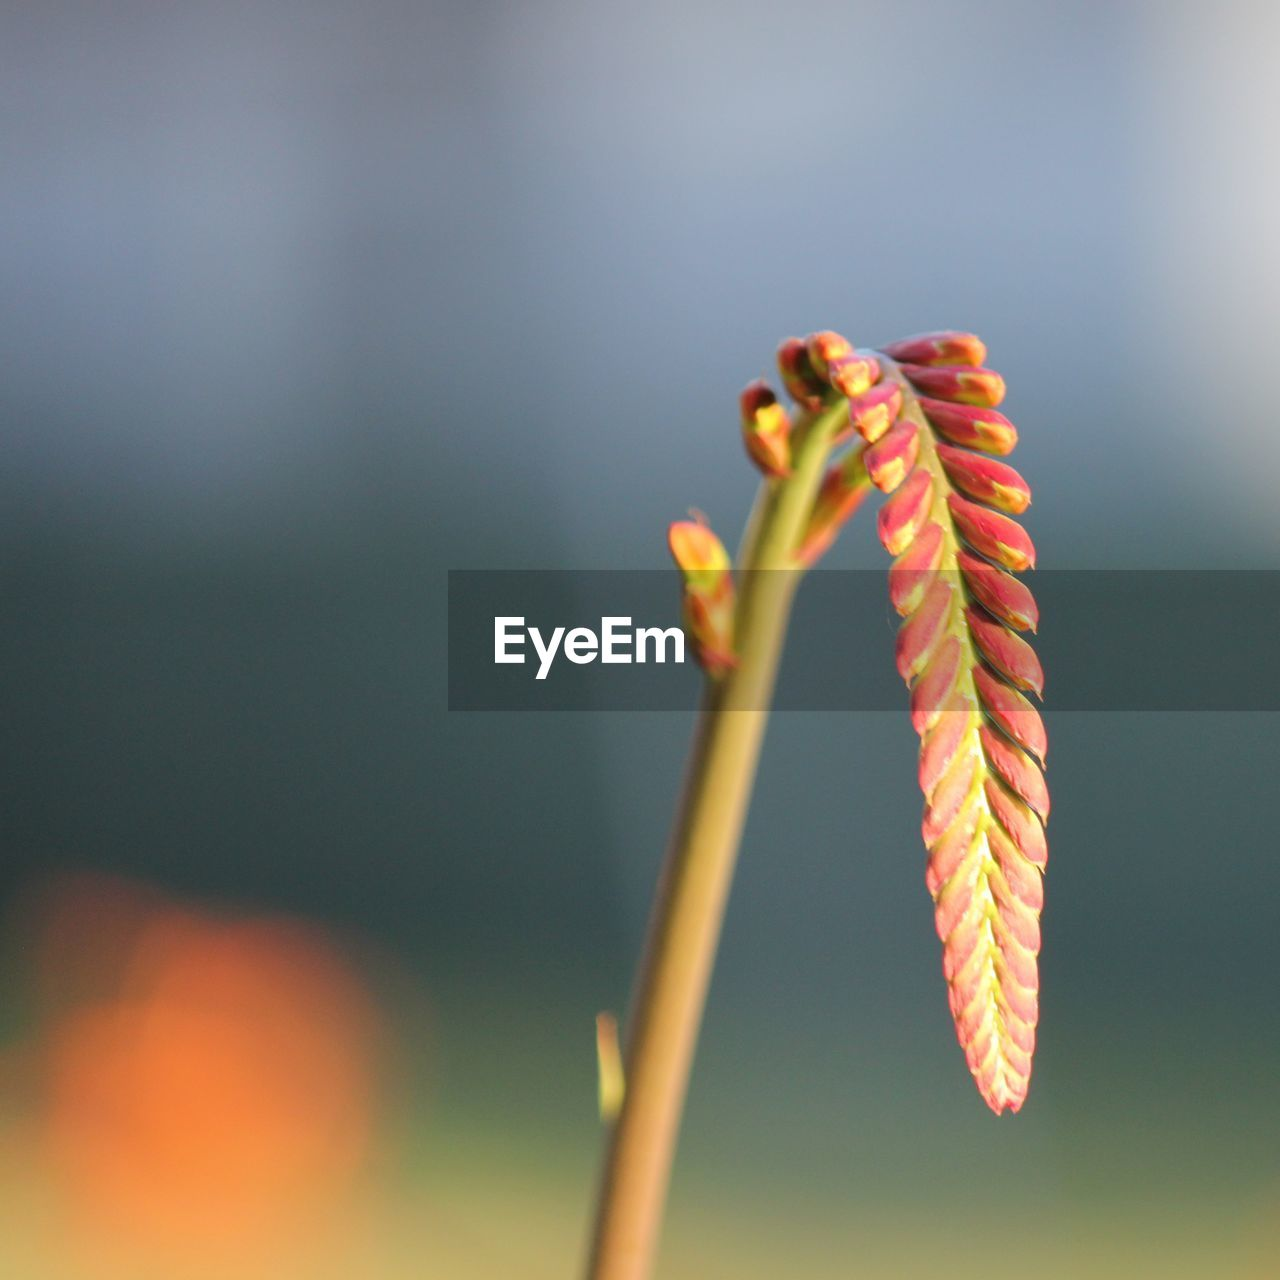 close-up, focus on foreground, plant, nature, beauty in nature, no people, growth, day, plant stem, outdoors, flower, selective focus, flowering plant, fragility, vulnerability, animal themes, one animal, sunlight, orange color, insect